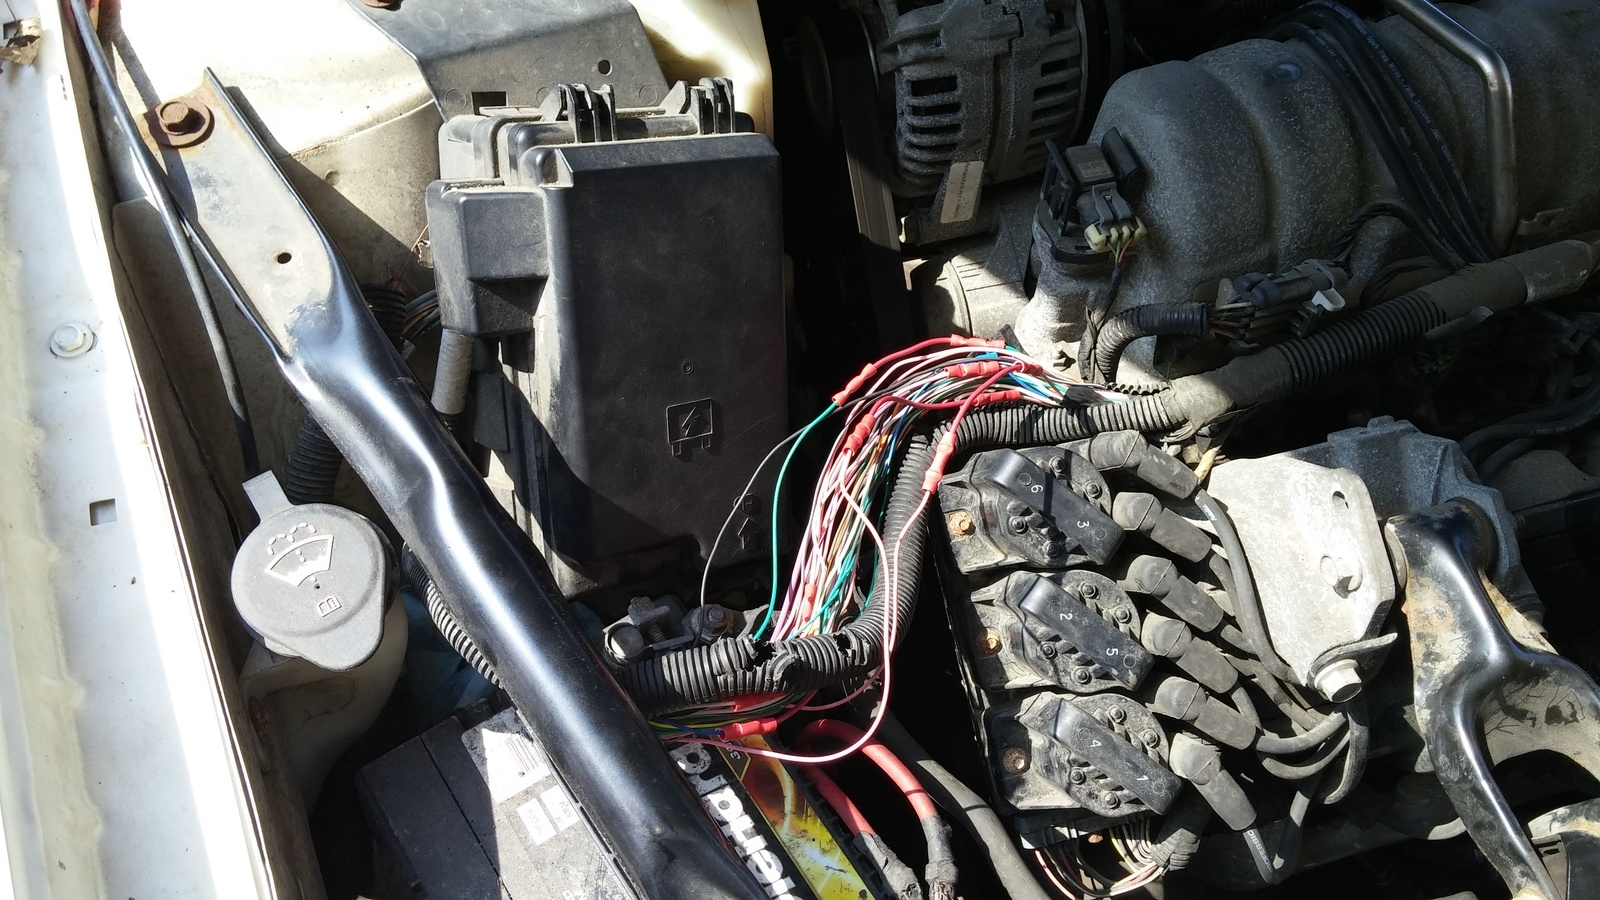 Pontiac Grand Prix Questions Radiator Fan Doesnt Work When Engine Wiring Up A Relay Is There Possibly Secondary Temp Sending Unit Elsewhere That Triggers The Fans To Turn On